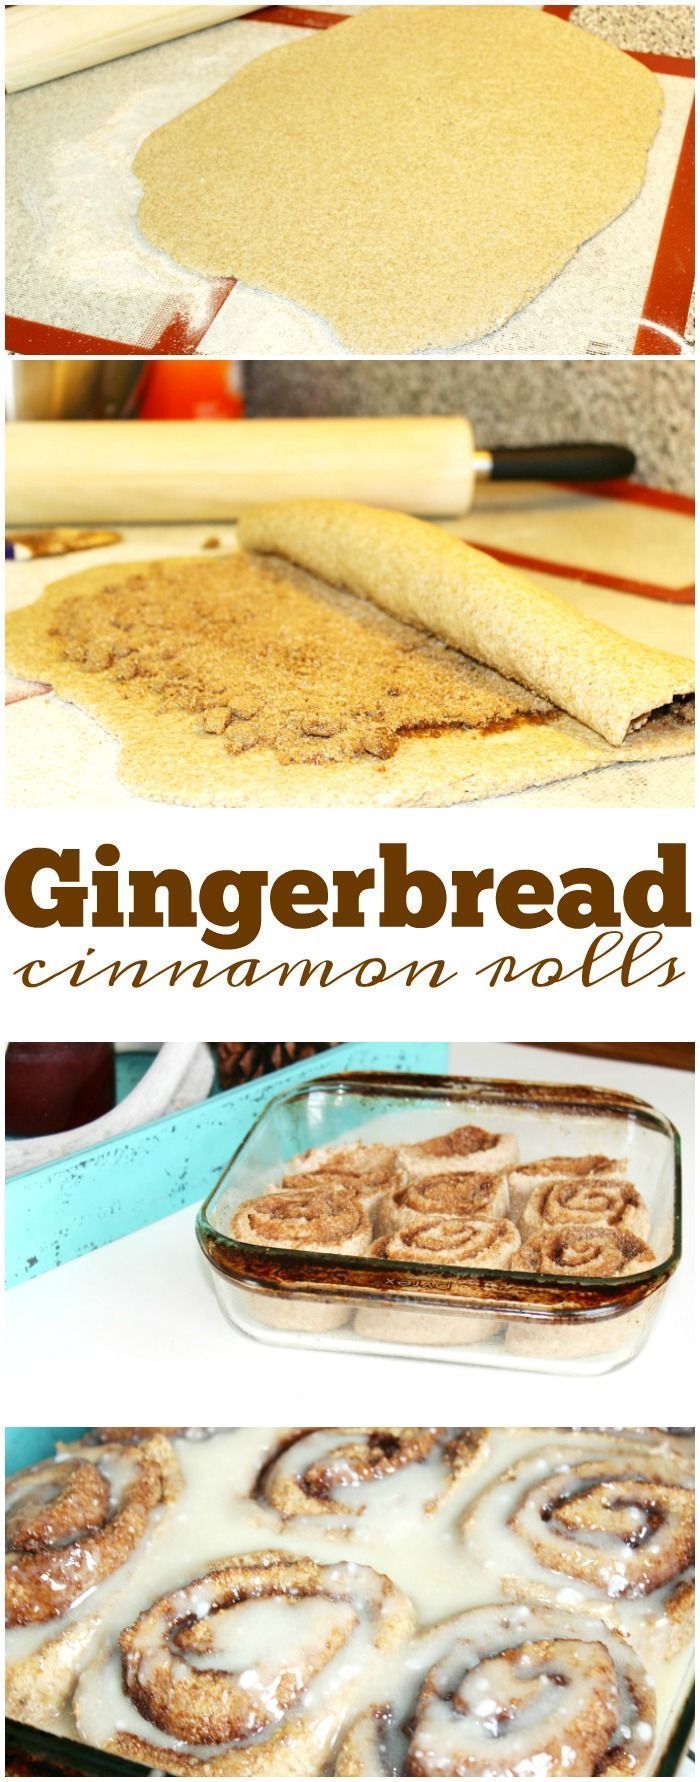 Gingerbread cinnamon rolls are amazing on Christmas morning! There's nothing like homemade cinnamon rolls and adding gingerbread is so tasty. via /thetypicalmom/